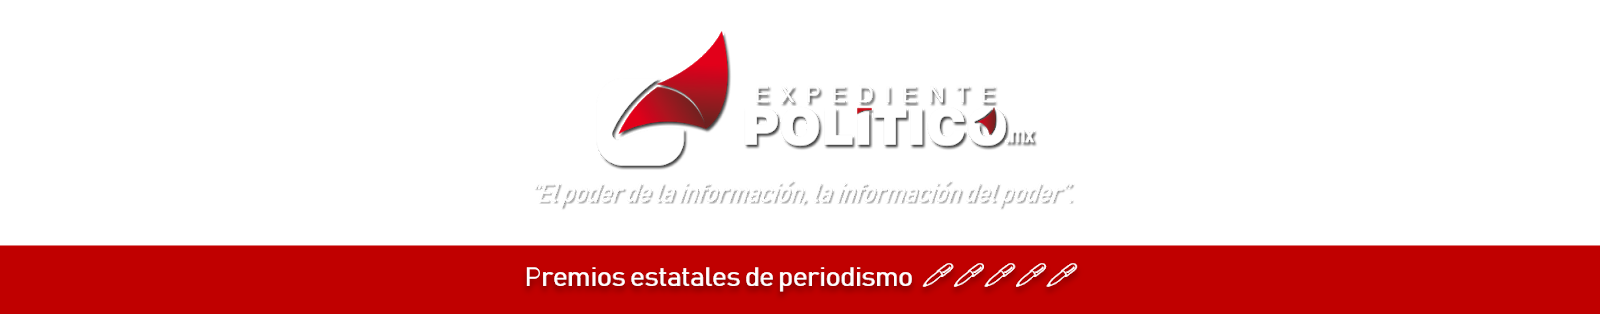 Expediente Político.Mx